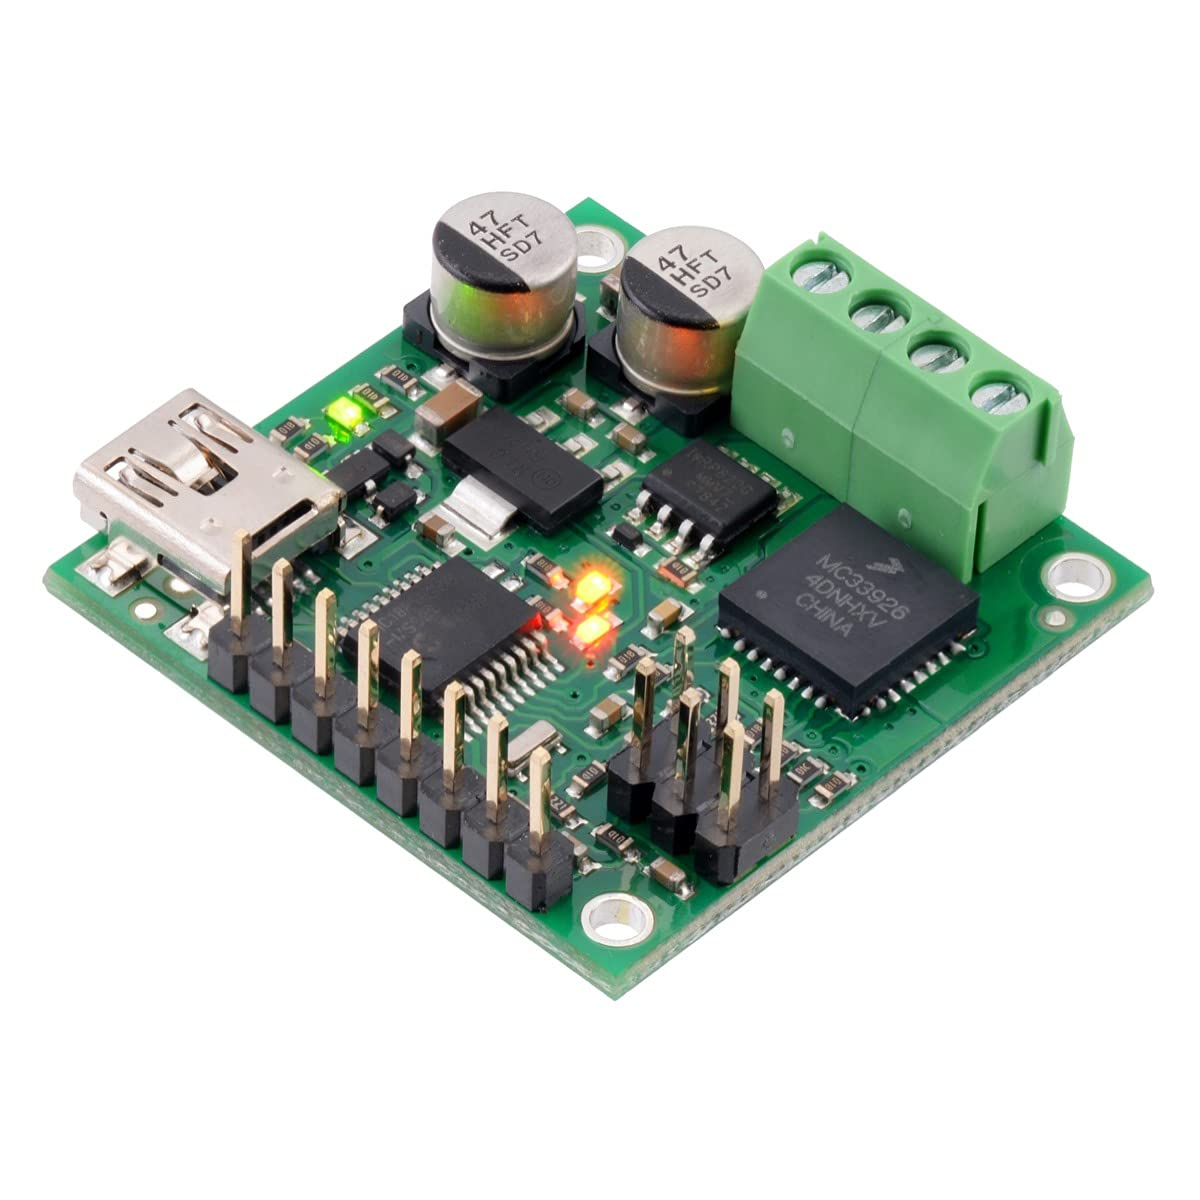 Jrk 2021 new 21v3 Popular products USB Motor Feedback with Controller